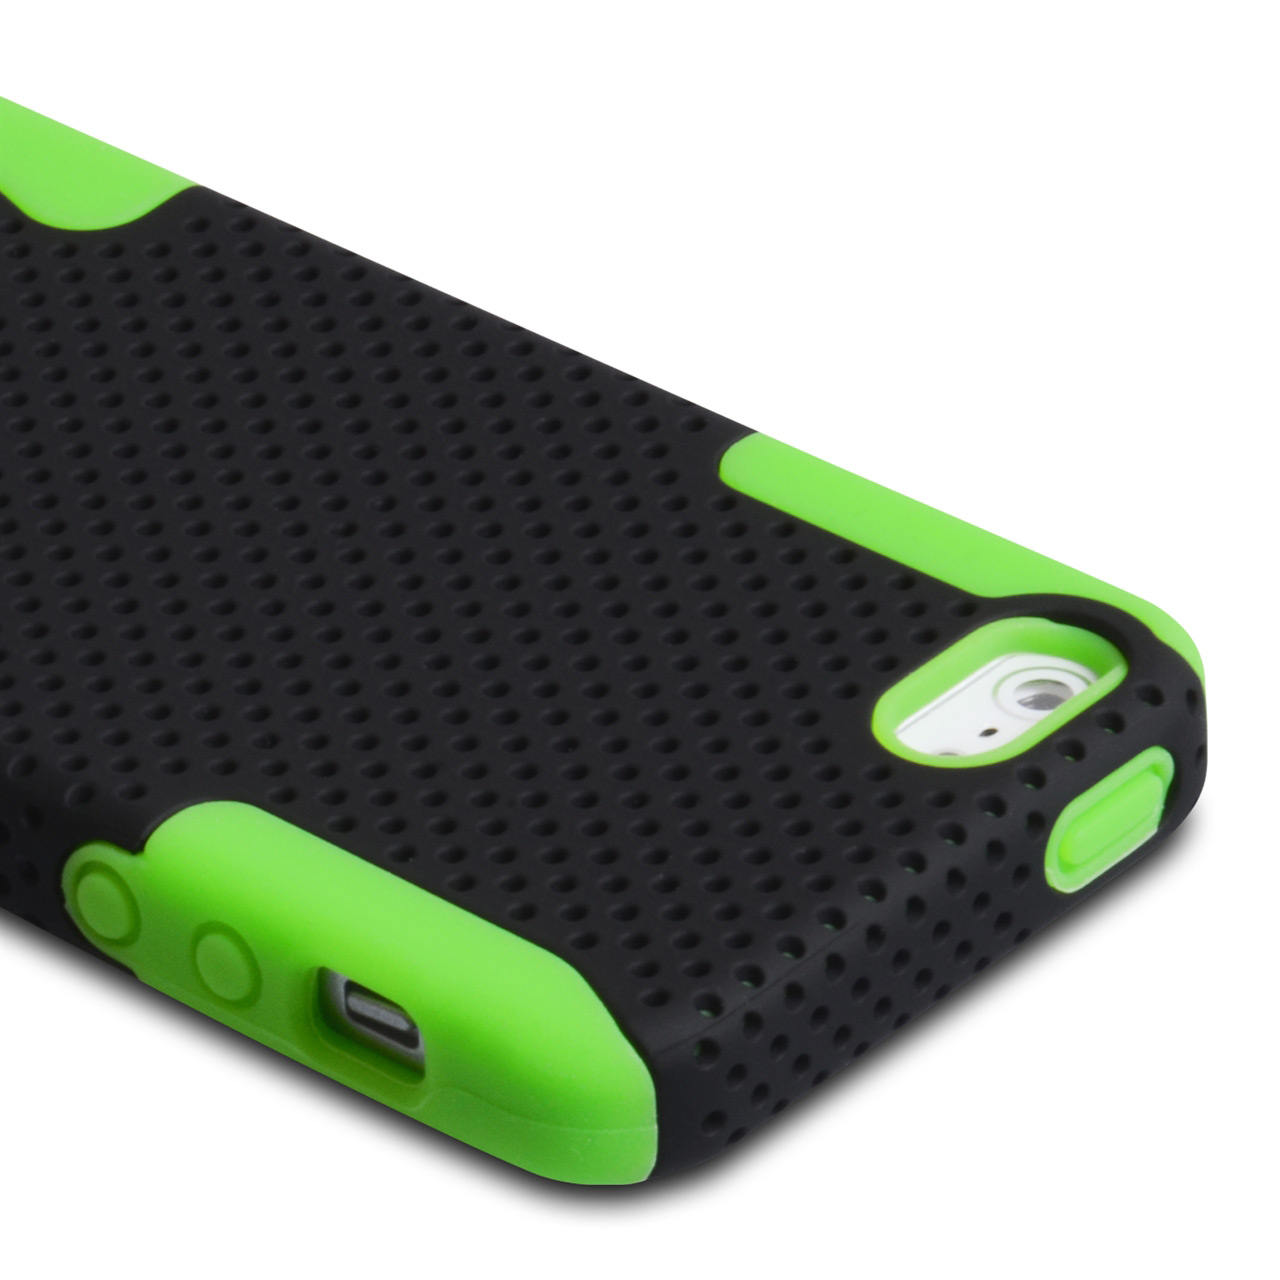 YouSave Accessories iPhone 5 / 5S Green Mesh Combo Case